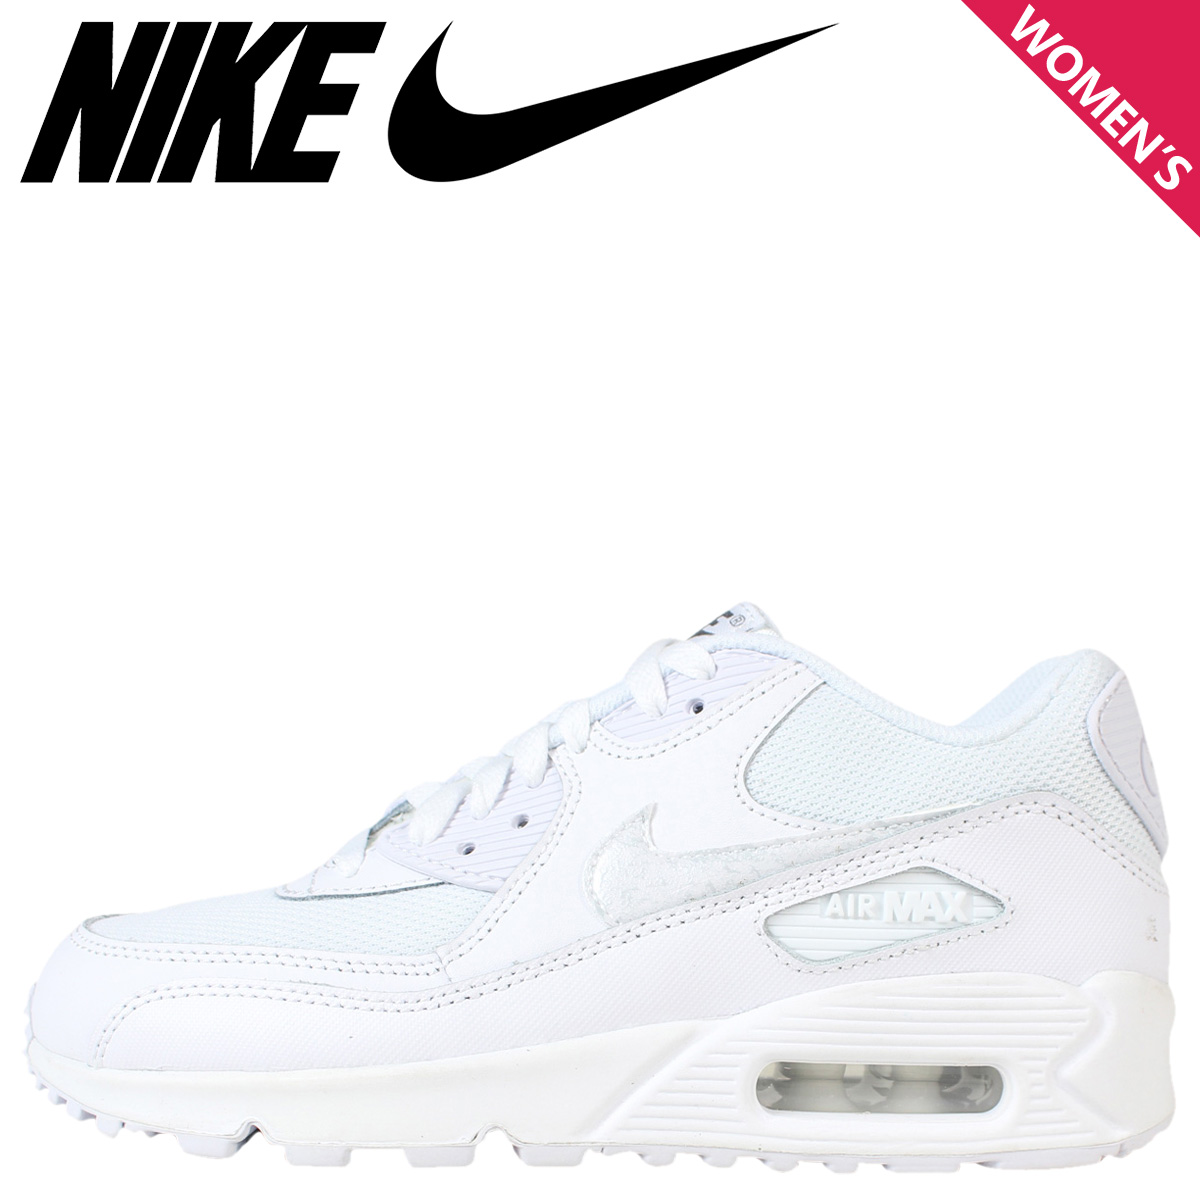 the best attitude 2bf96 e934c The origin of the name comes from the Greece myths of one Jeff Johnson saw  in the dream, victory goddess Nike (Nike).